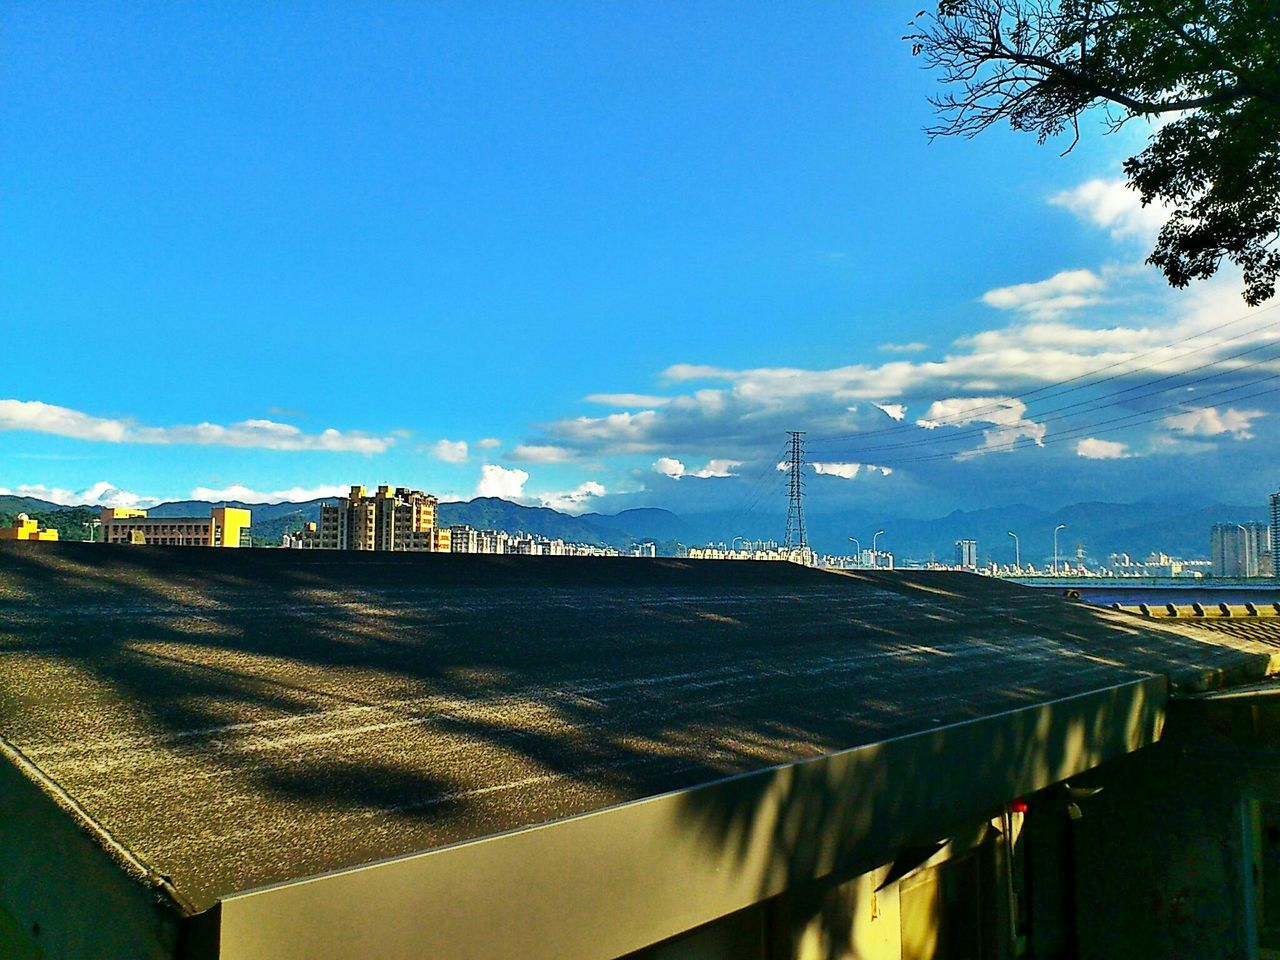 sky, architecture, built structure, outdoors, no people, day, water, building exterior, cloud - sky, blue, nature, sunlight, travel destinations, cityscape, sea, city, scenics, beauty in nature, tree